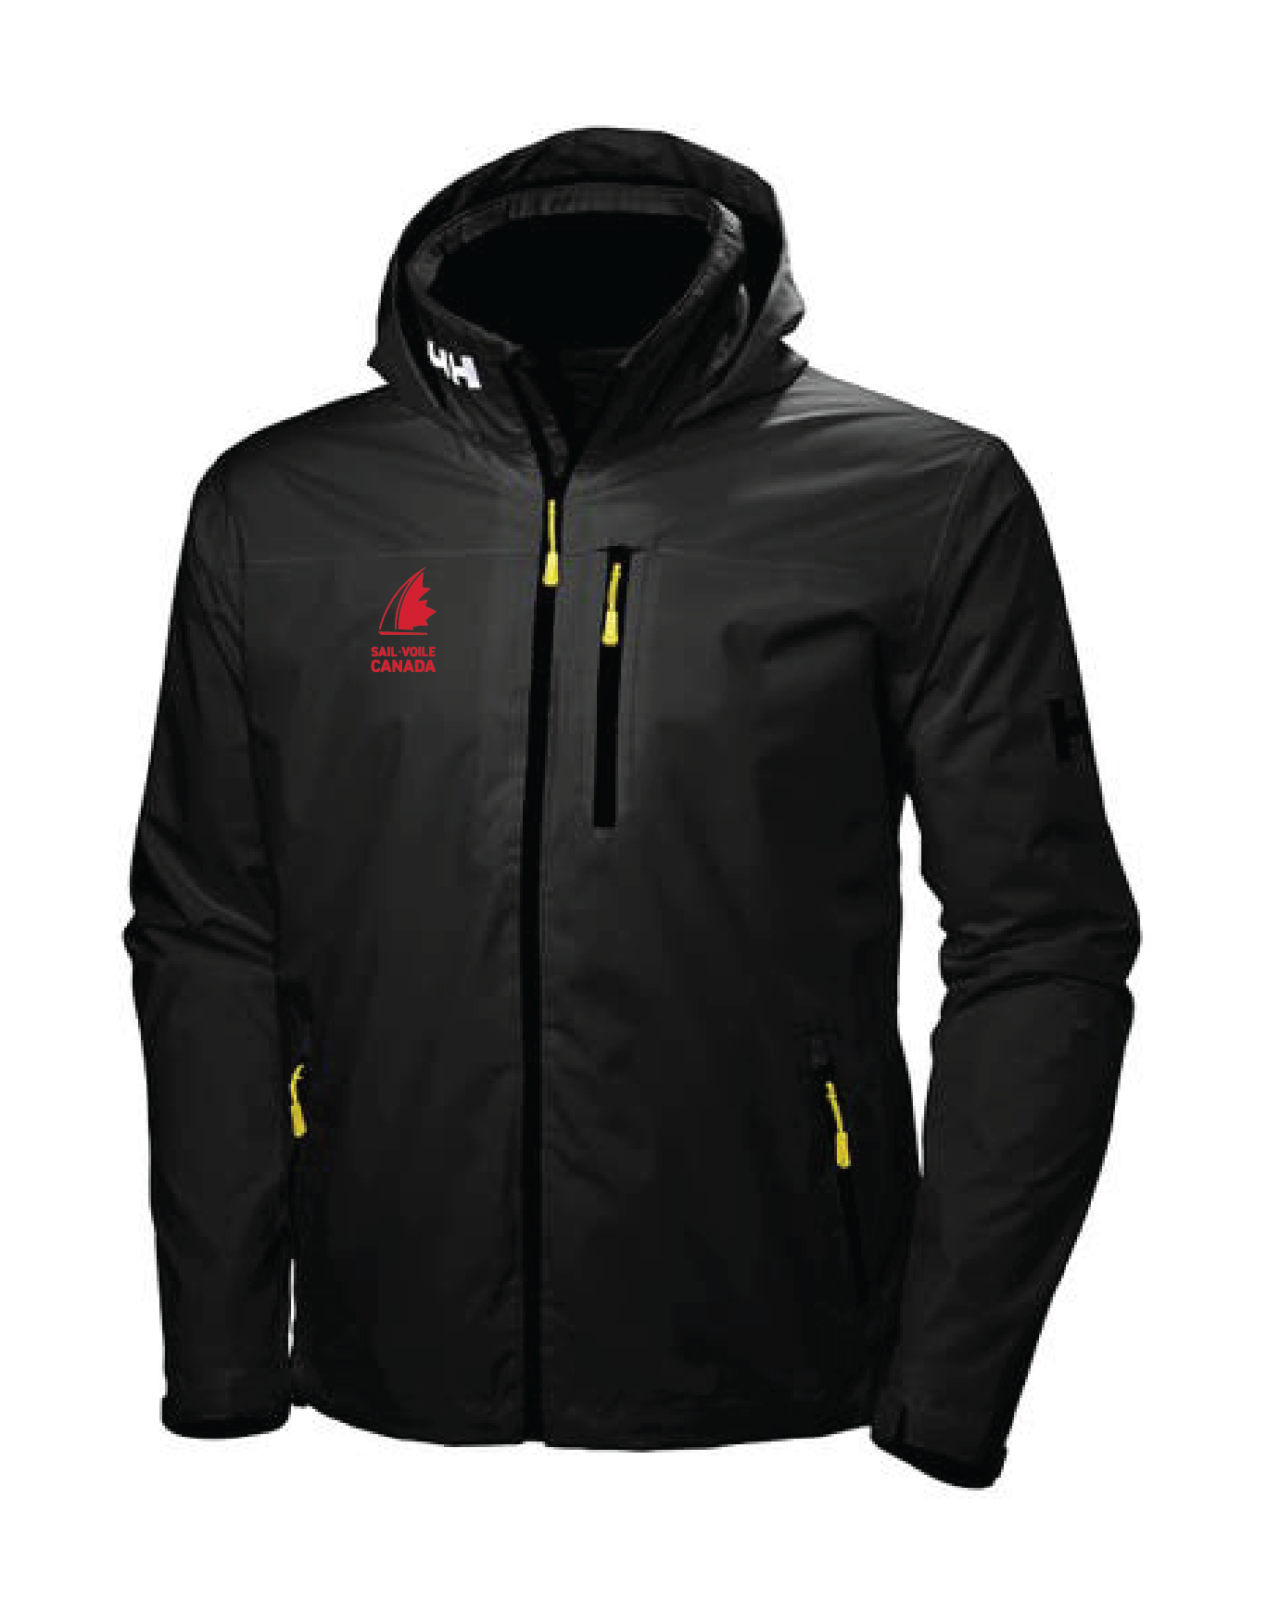 Sail Canada Hooded Crew Jacket by Helly Hansen - Mens